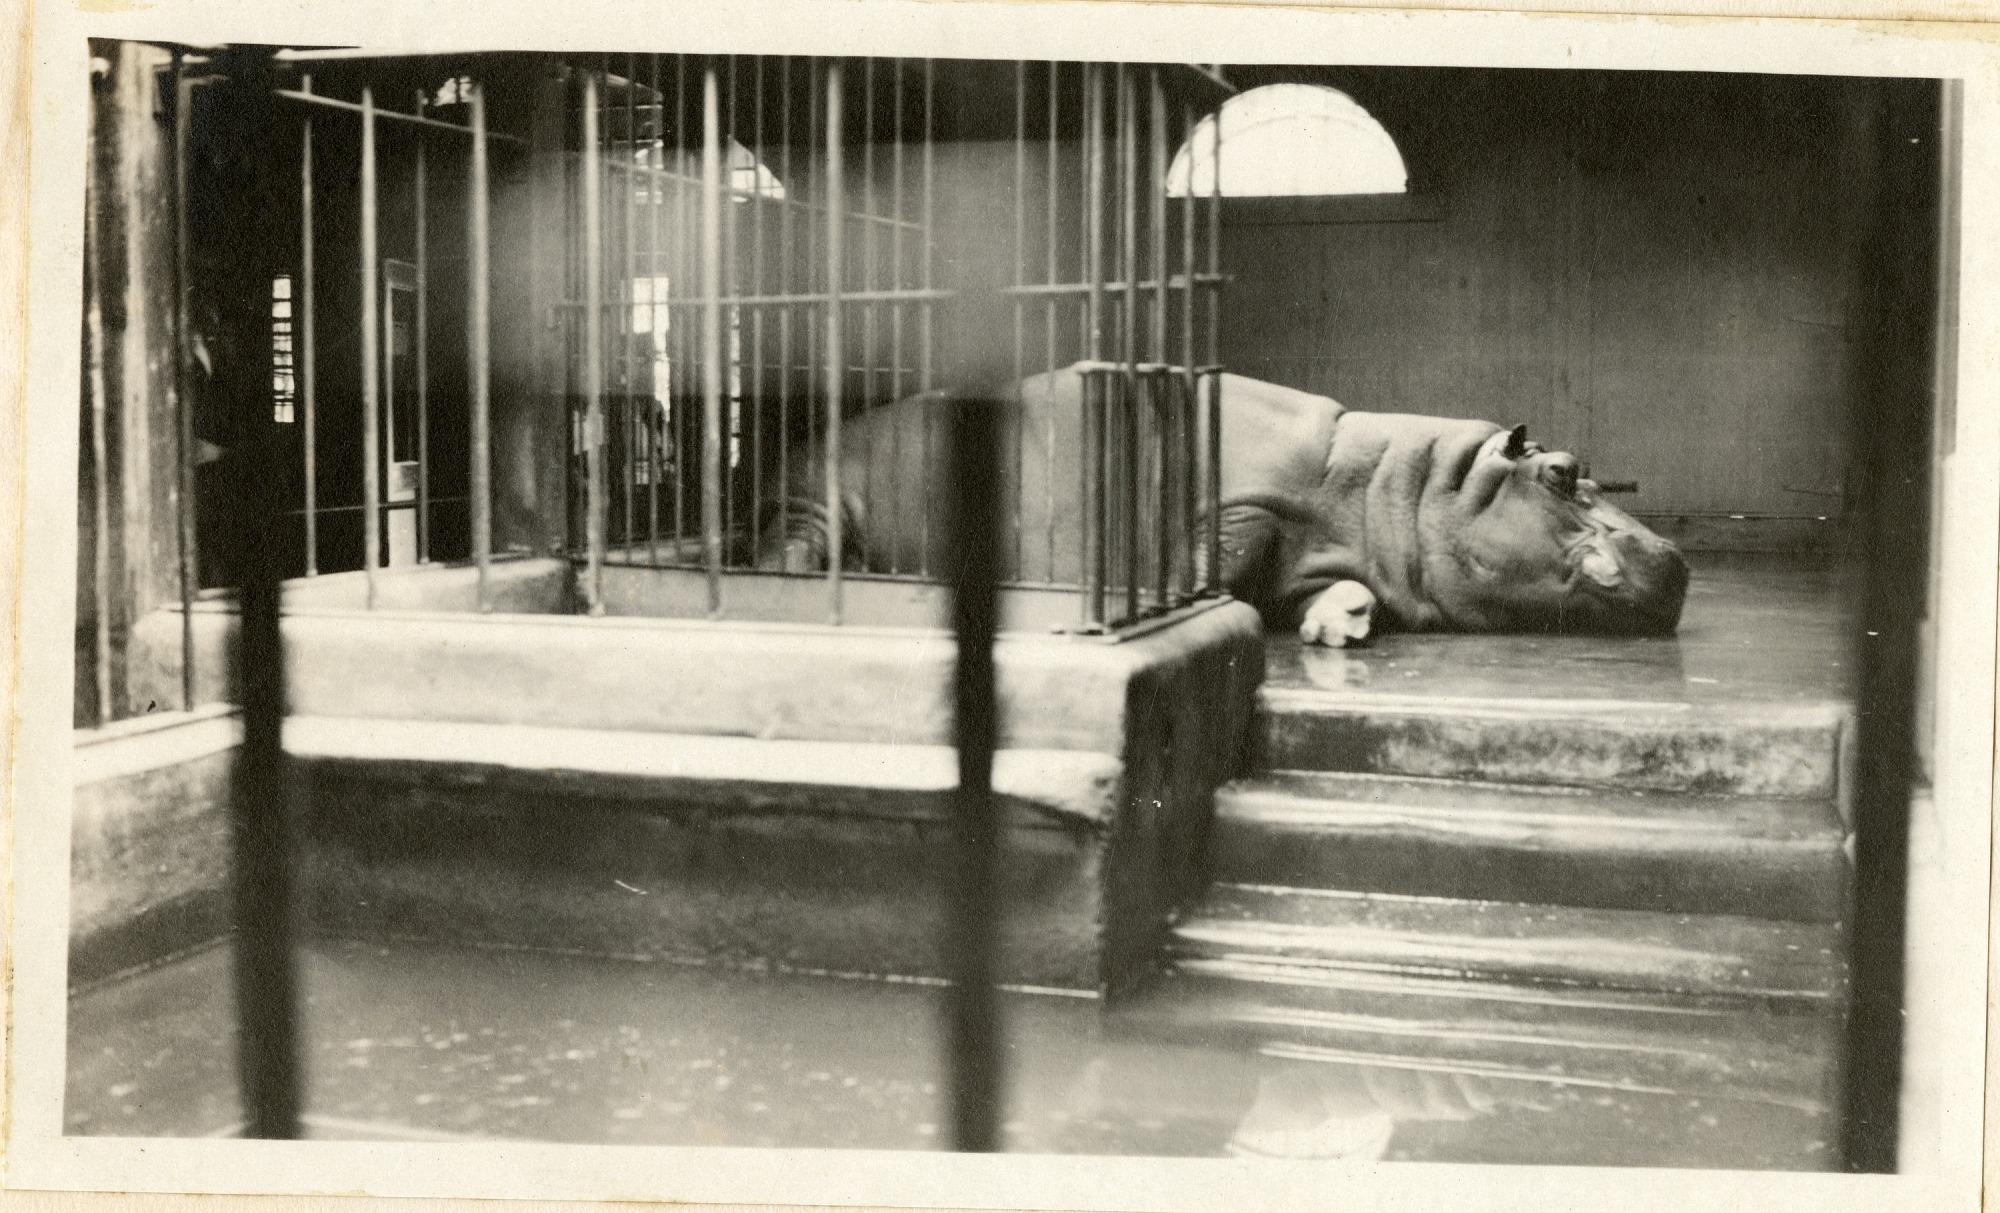 Views of the National Zoological Park in Washington, DC, showing Hippopotamus